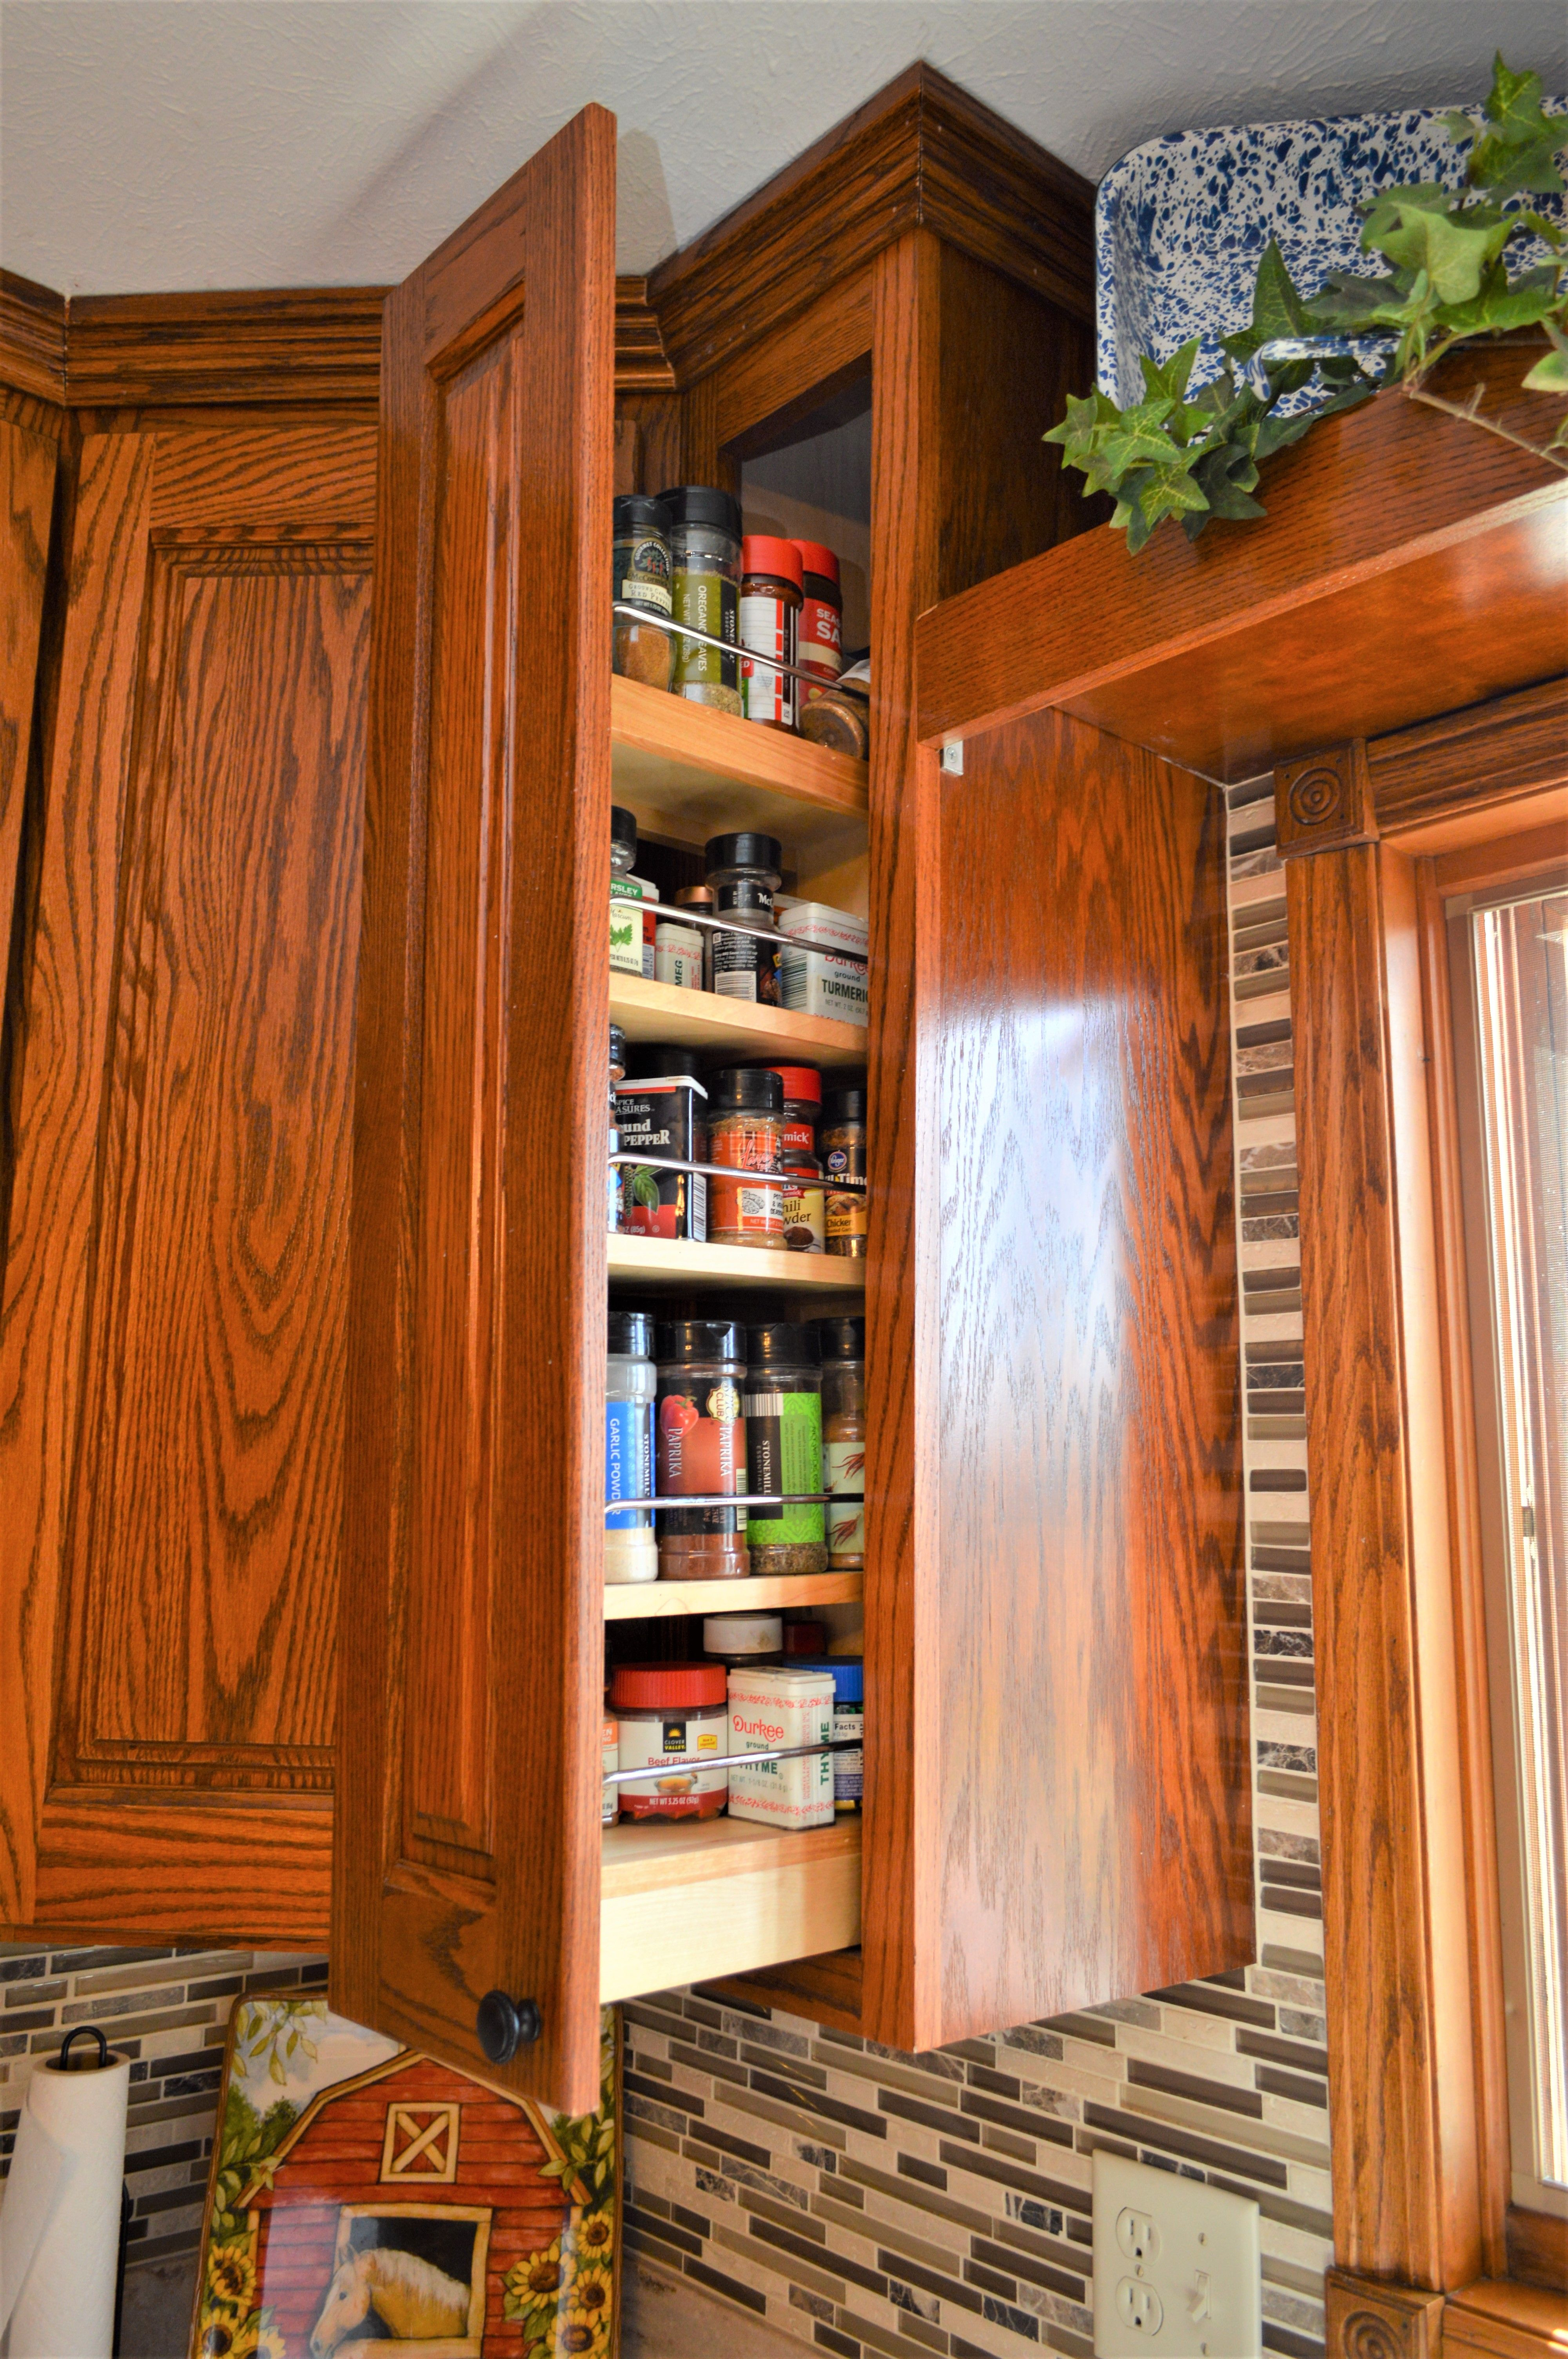 Spice Rack Cabinet Haas Signature Collection Augusta Door Style Oak Pecan Finish Cabinet Accessories Cabinetry Kitchens Bathrooms